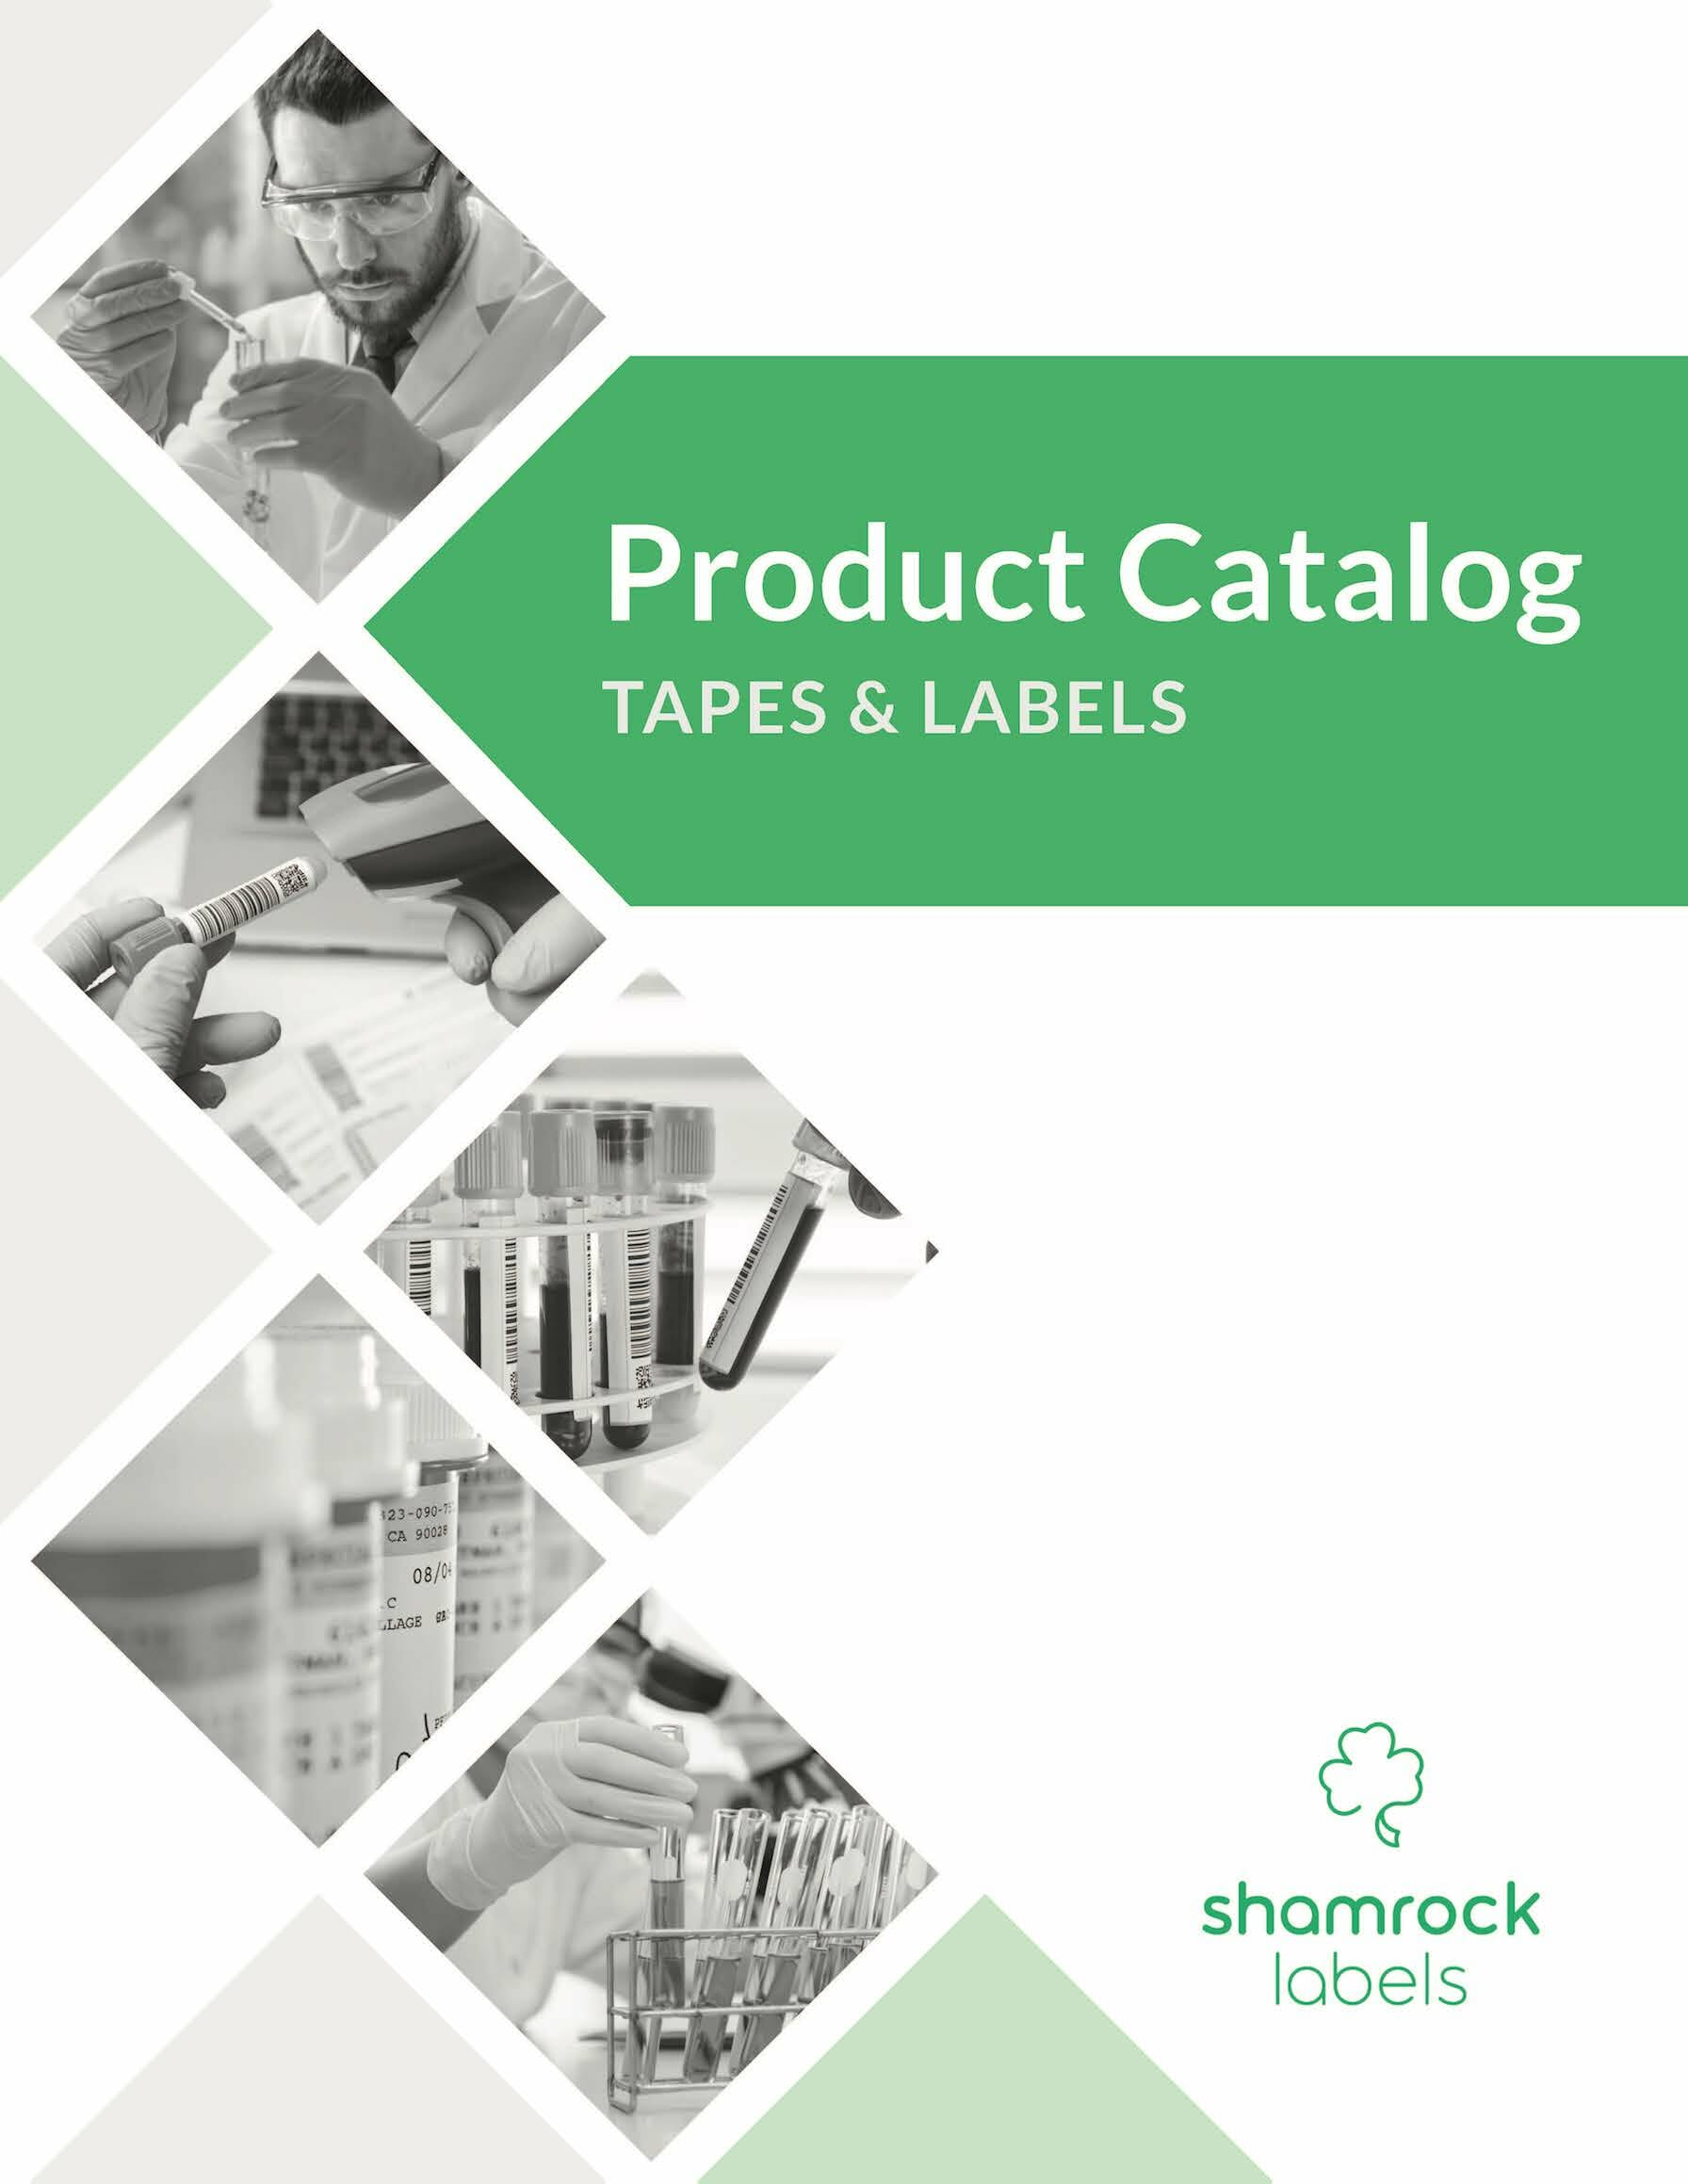 Interactive Product Catalog